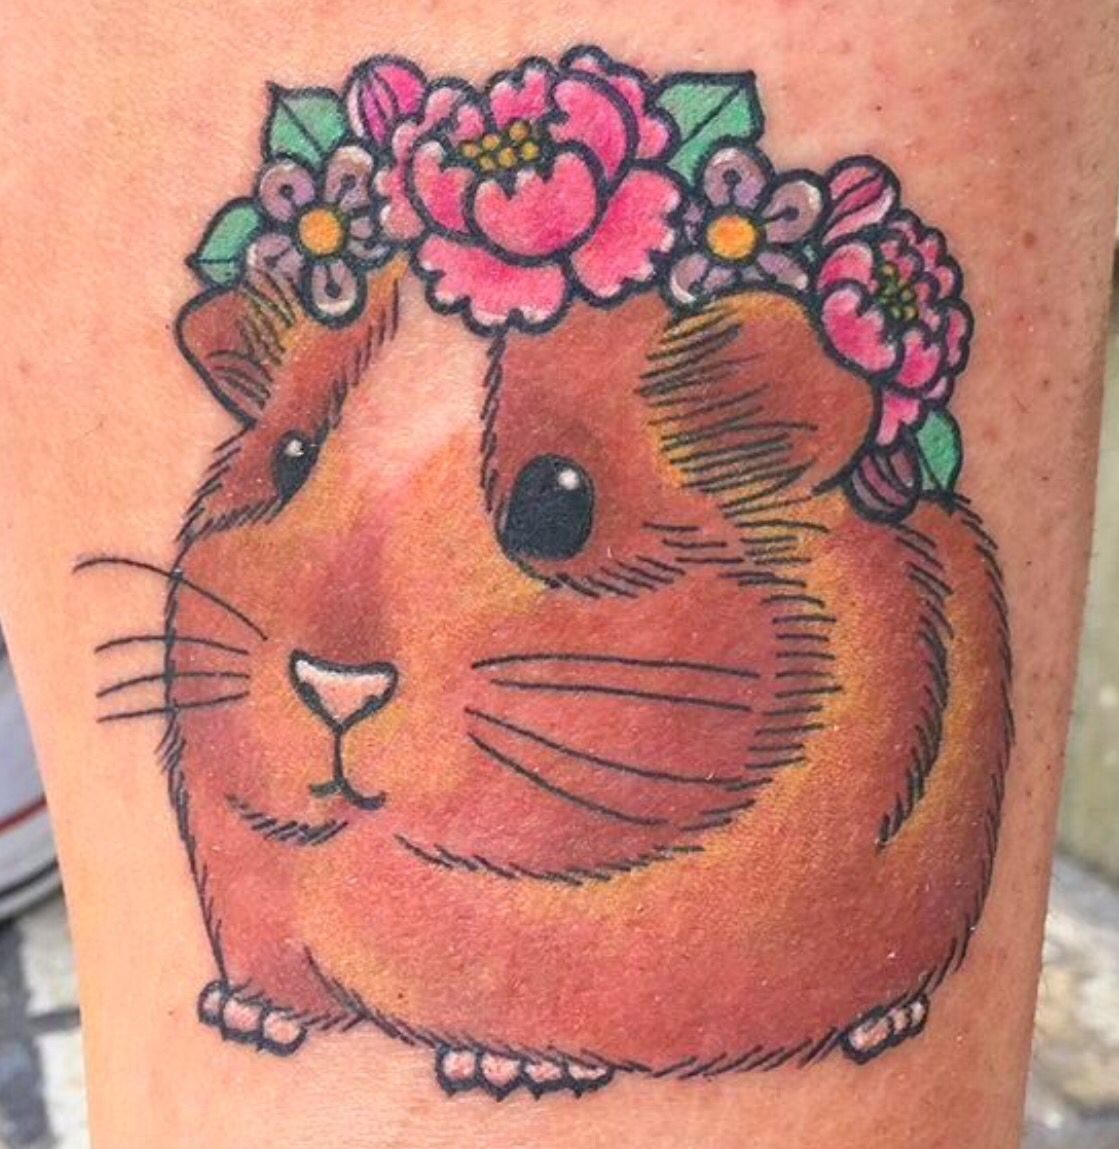 hamster tattoo hamsters tattoos ideas pinterest tattoo piercings and tatting. Black Bedroom Furniture Sets. Home Design Ideas